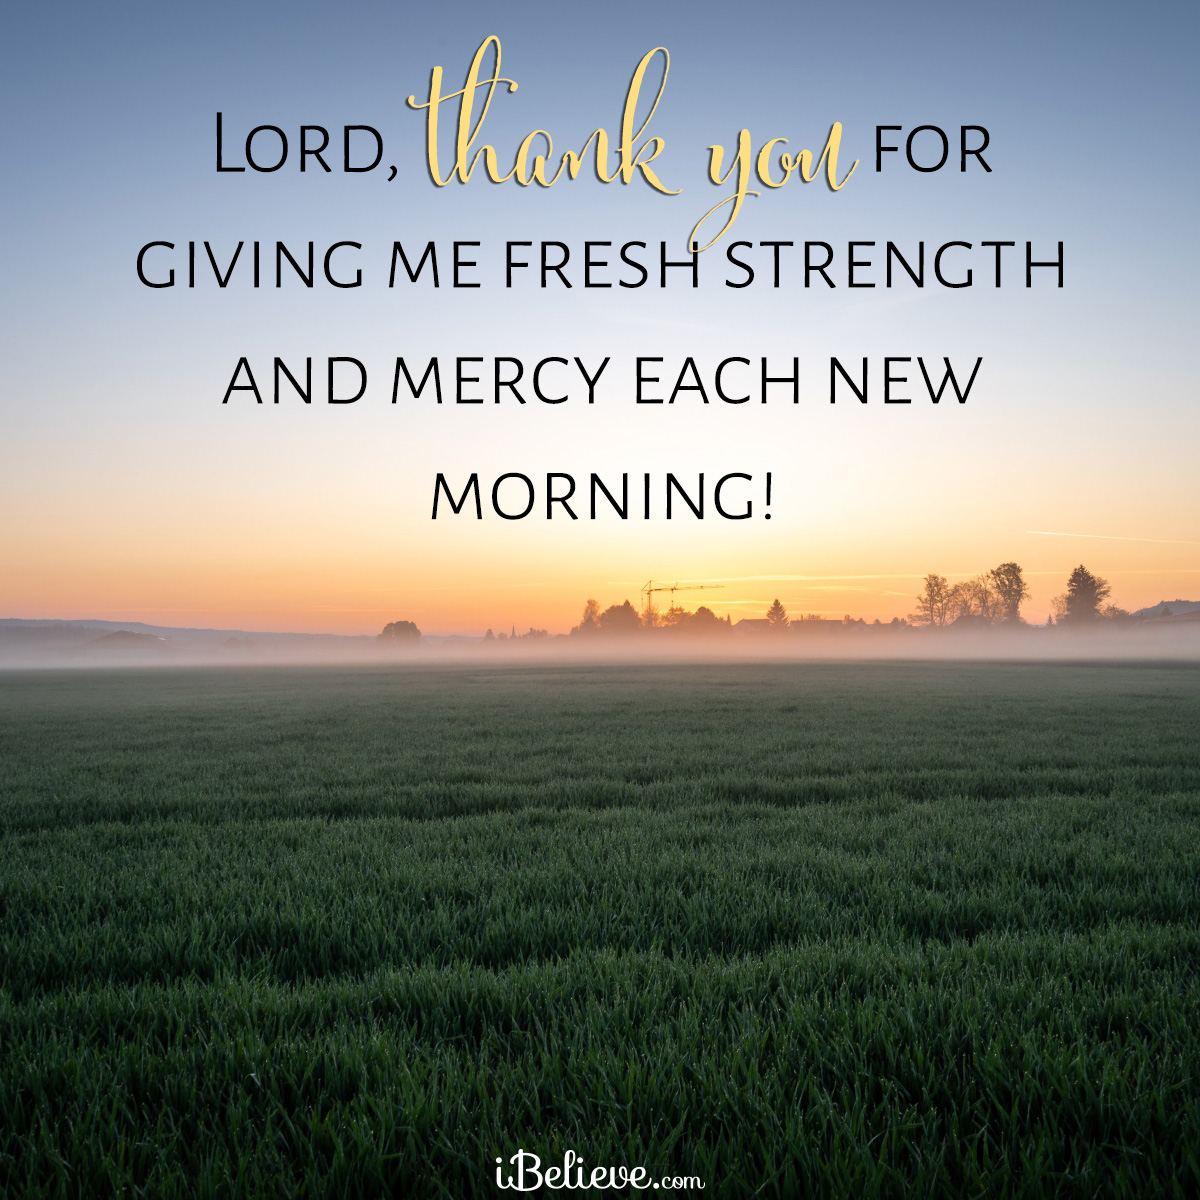 new mercies every morning, inspirational image